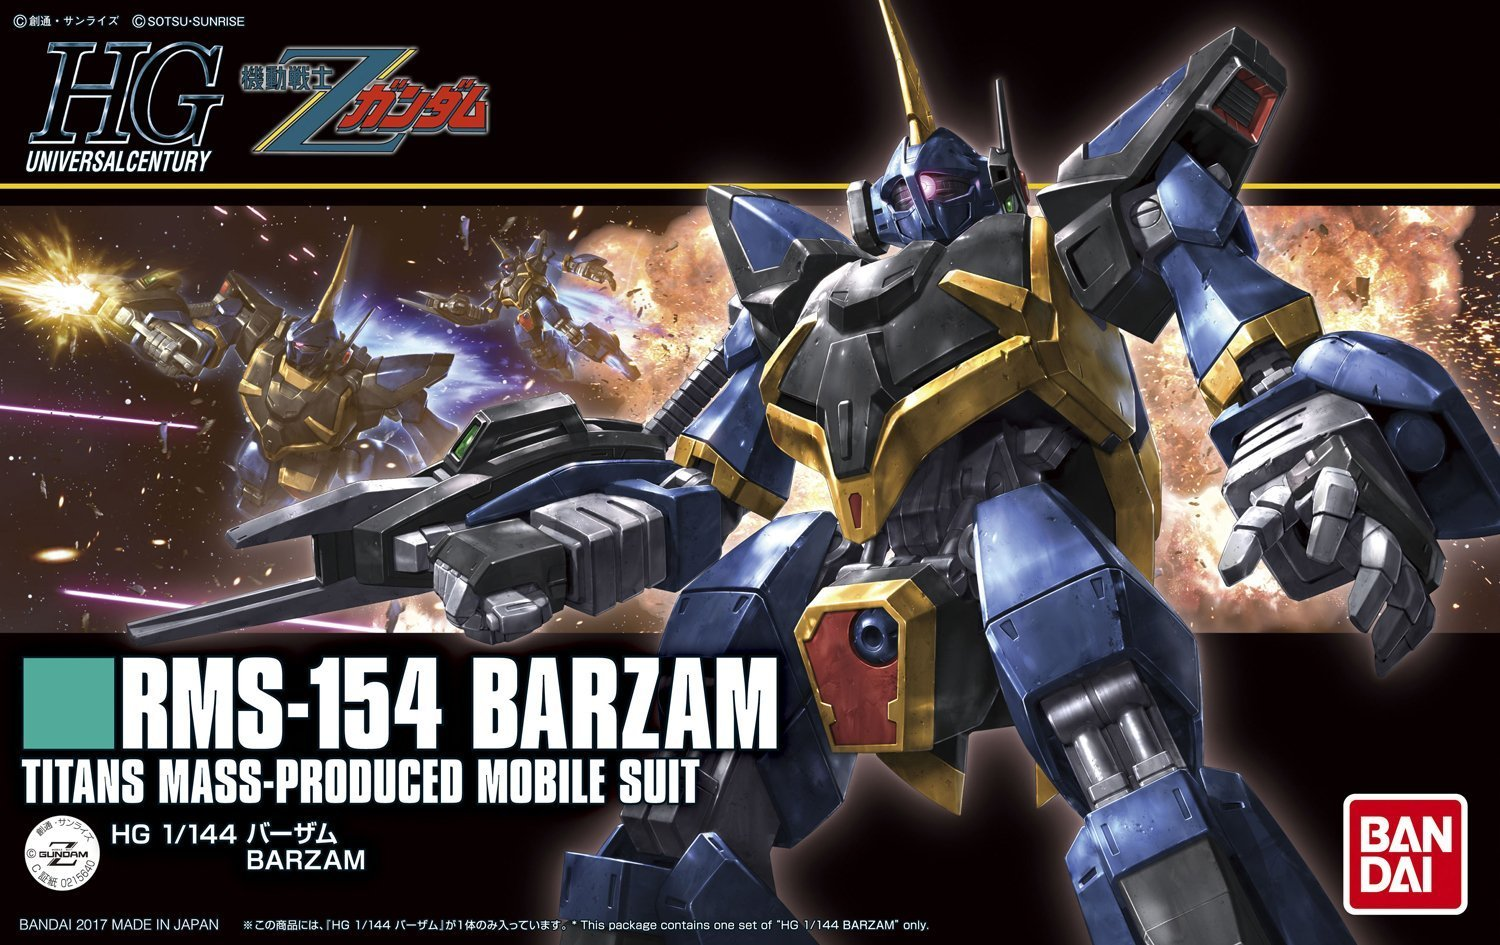 HGUC 1/144 Barzam - Model Kit image